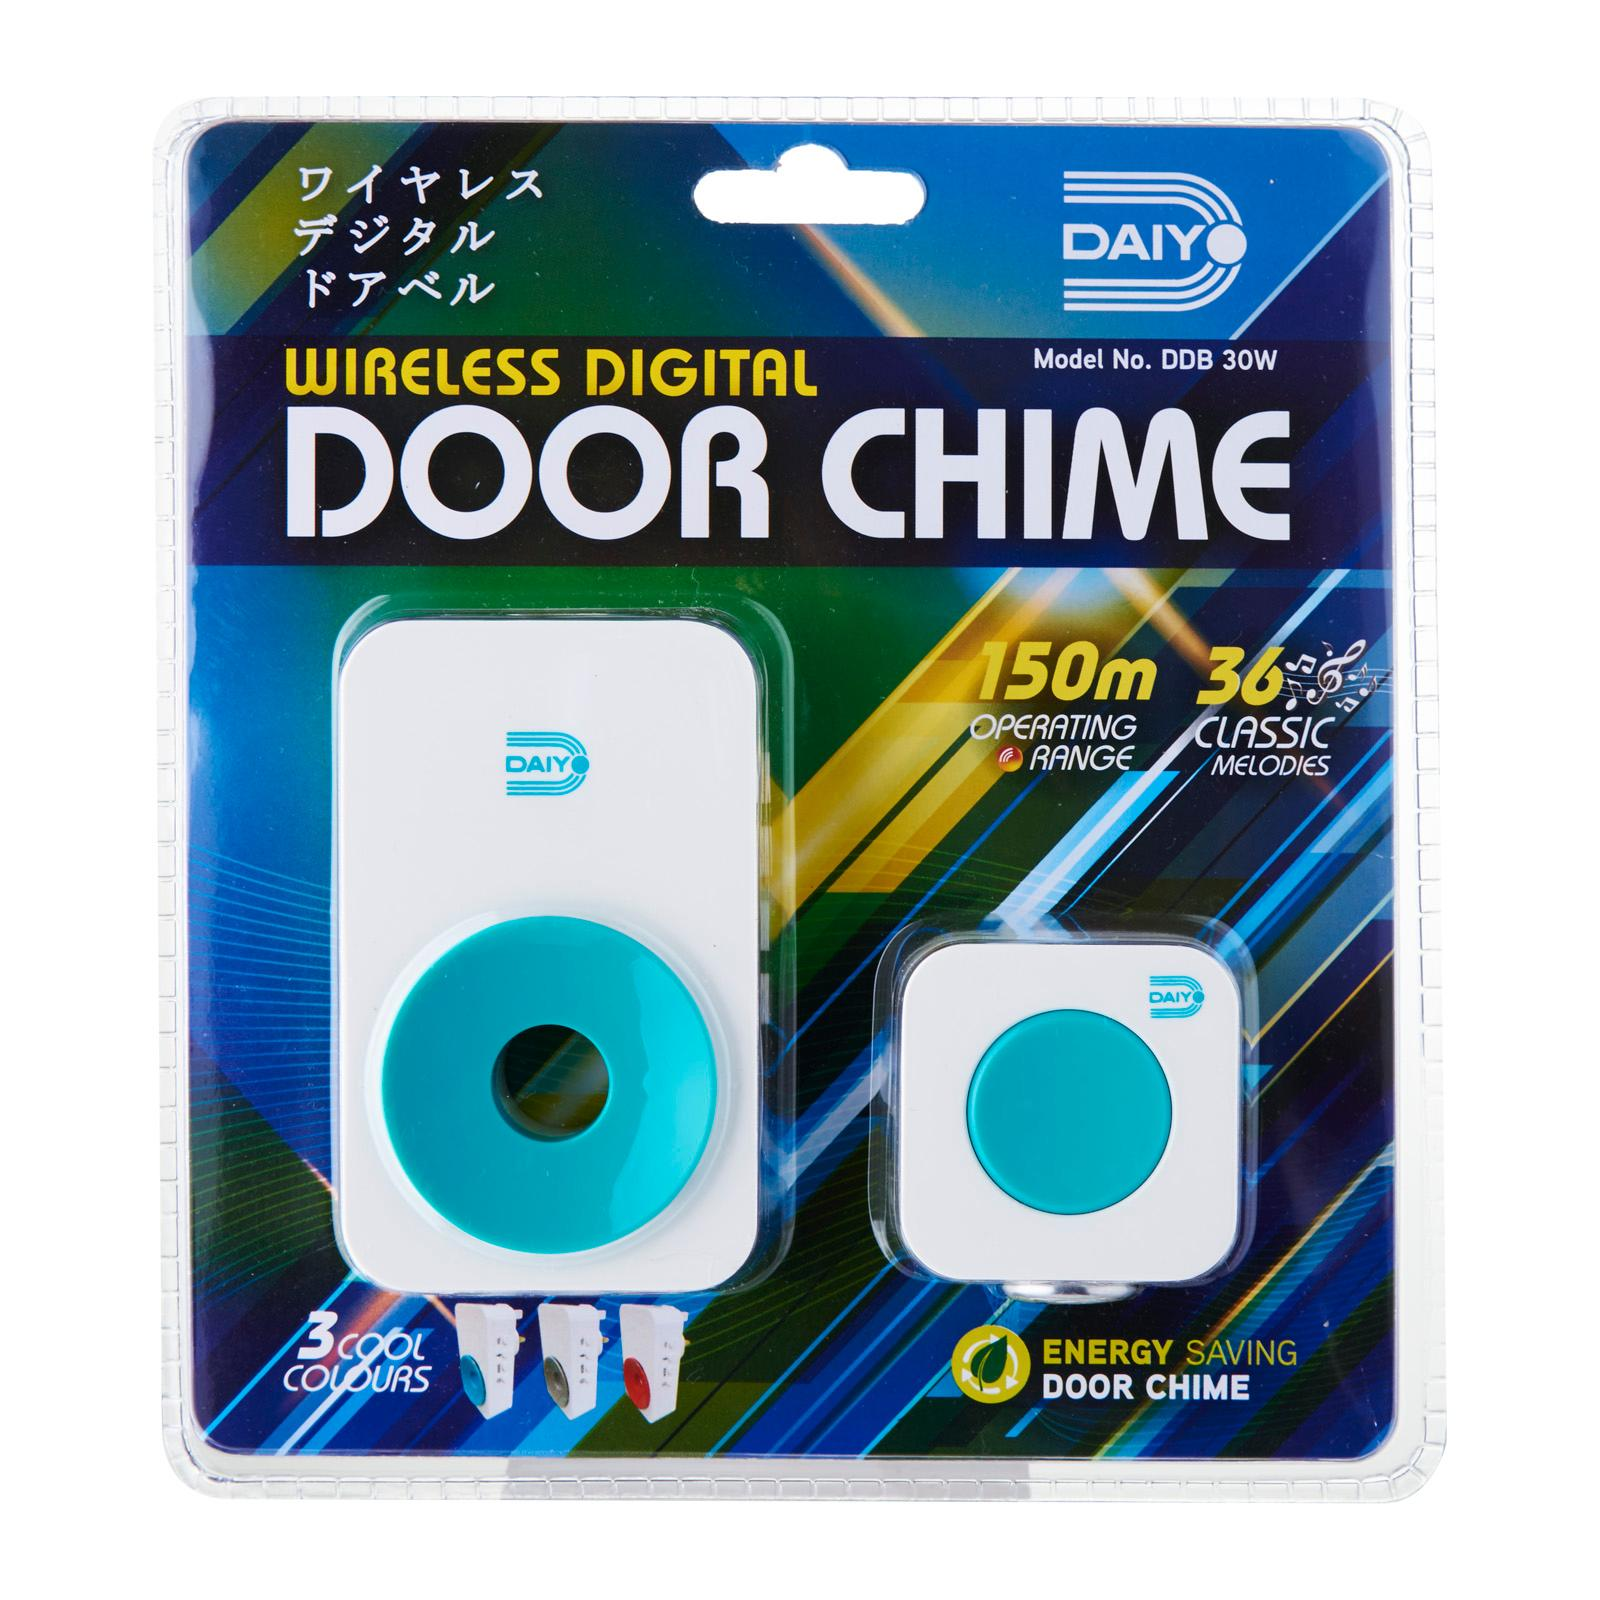 DDB 30WT Wireless Door Chime (AC) Turquoise